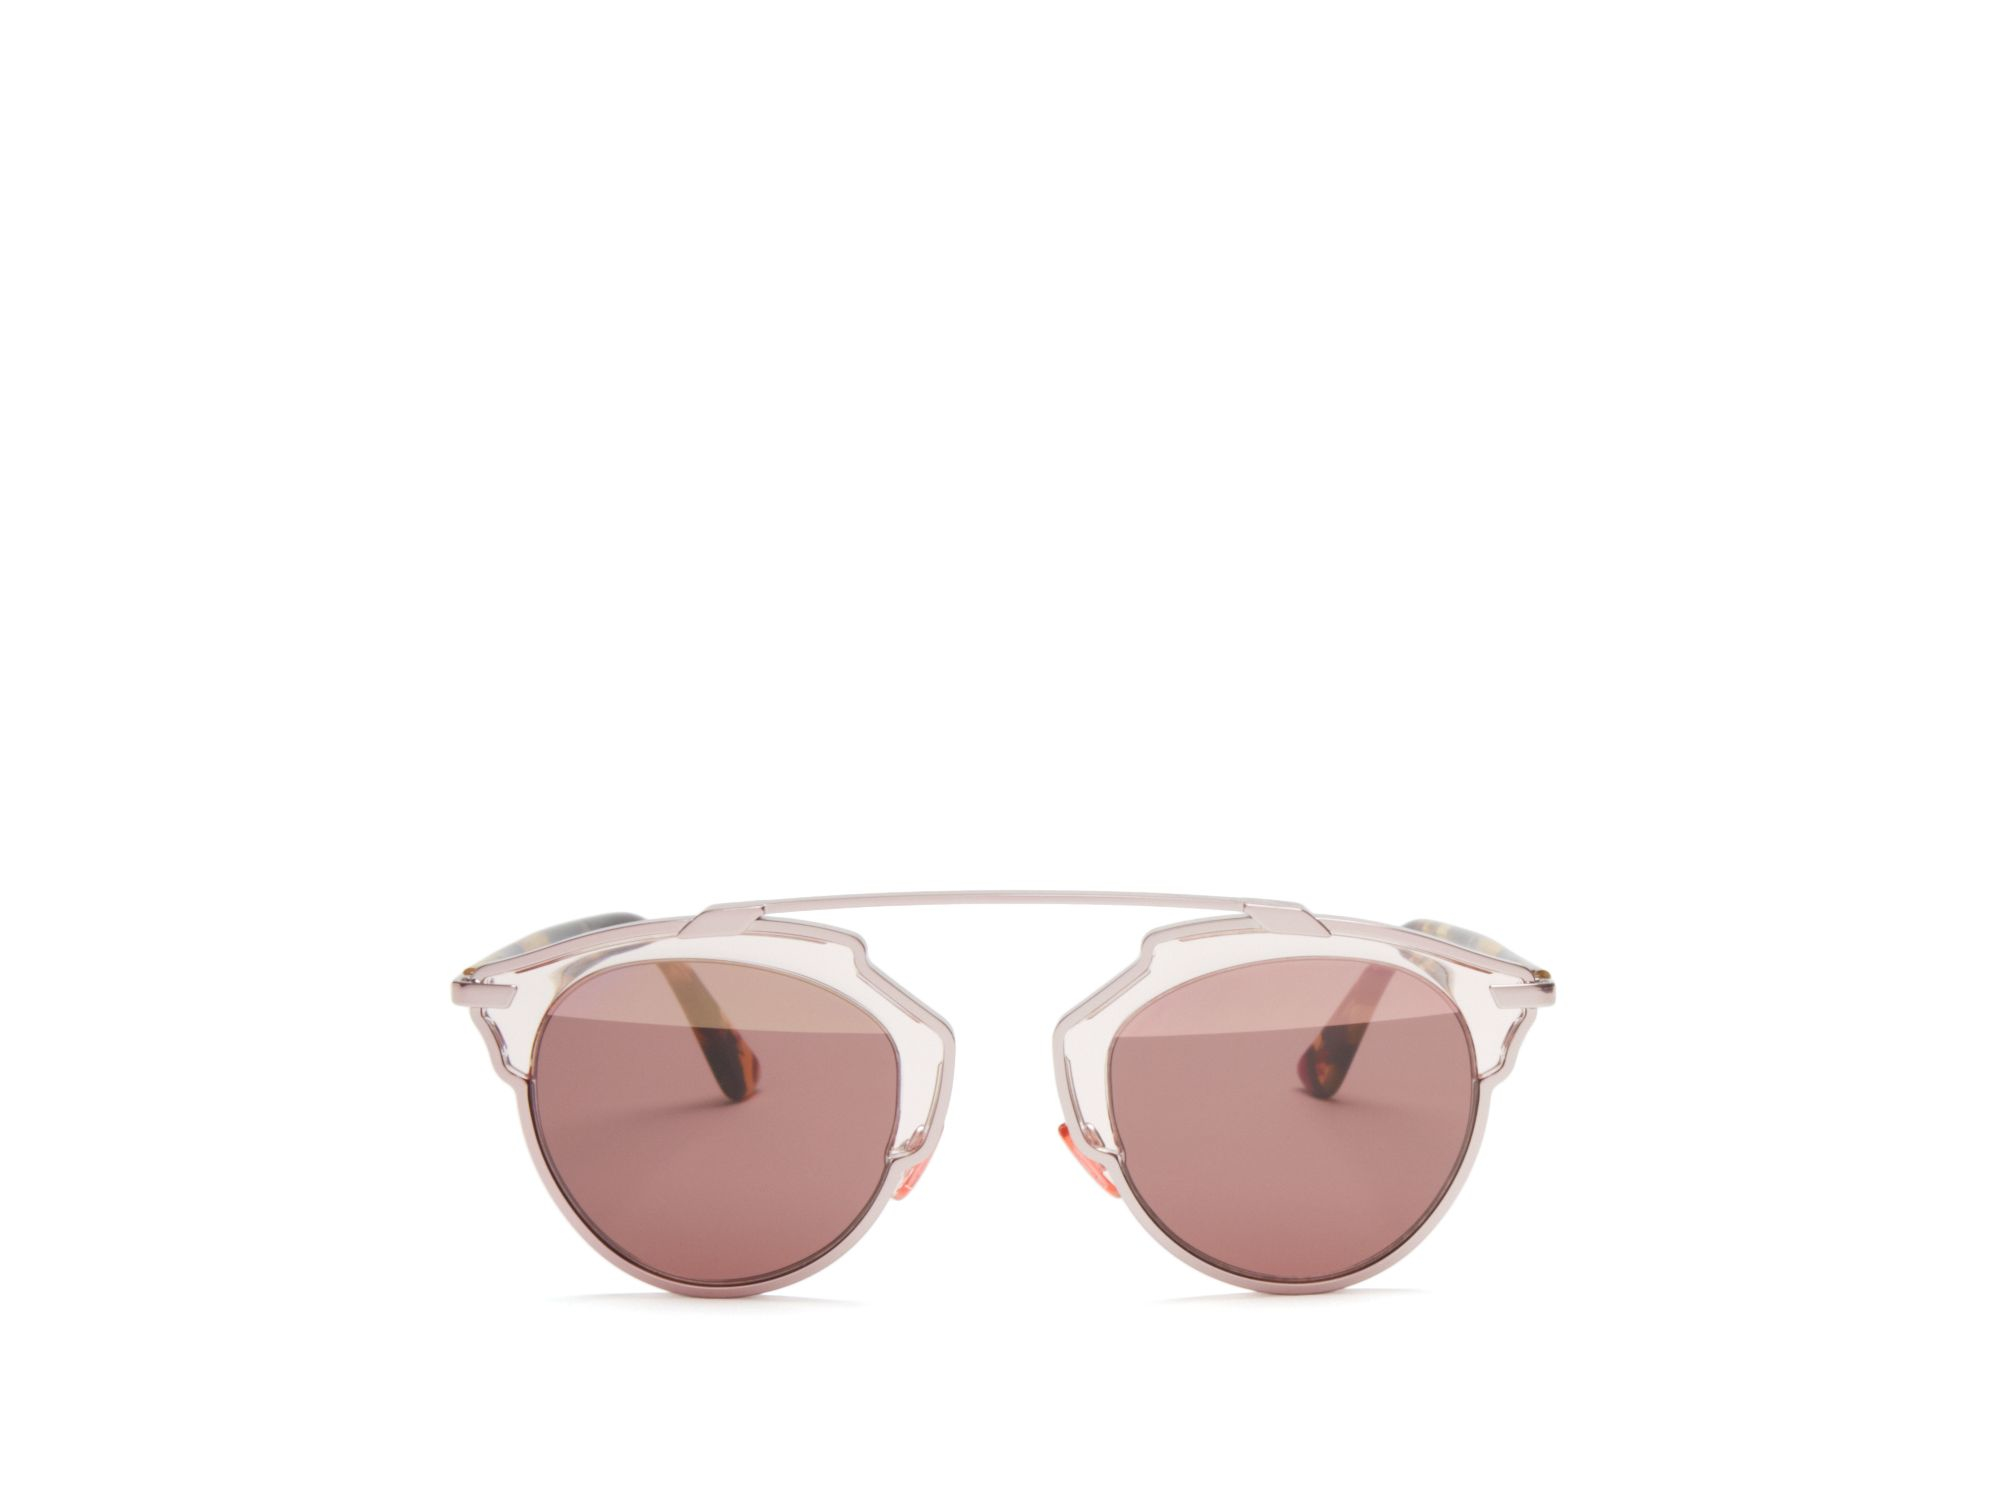 Dior So Real Mirrored Sunglasses In Pink Lyst